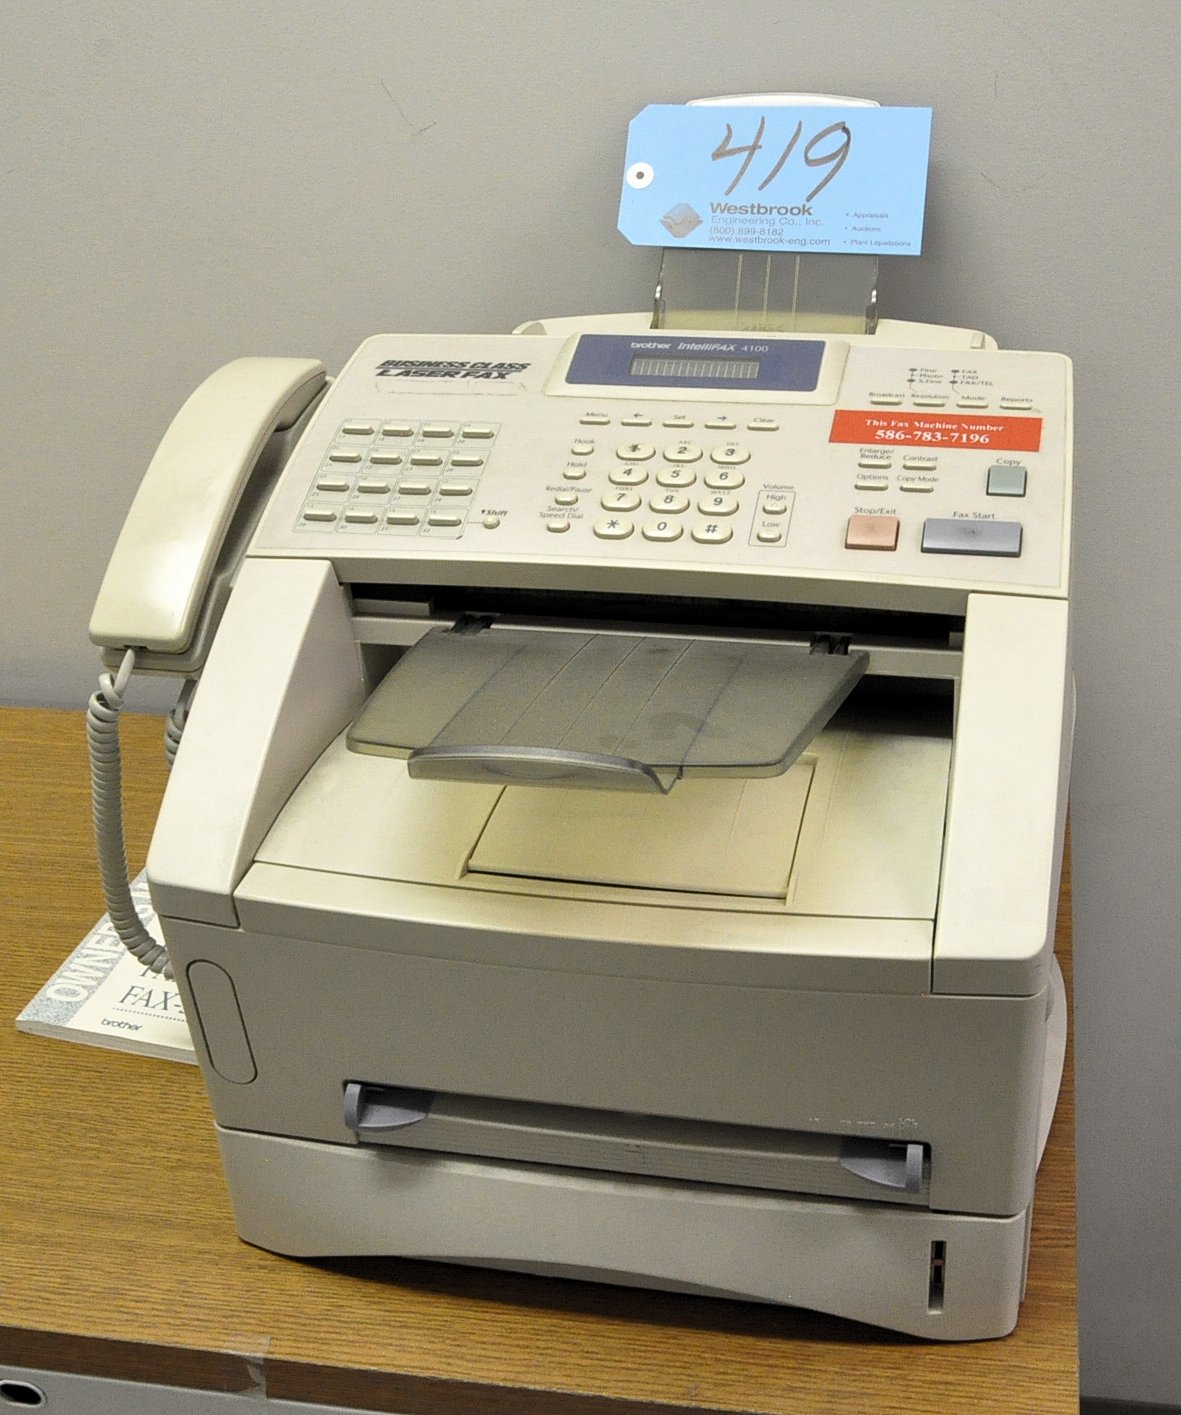 Lot-Brother Intellifax 4100, Fax Machine, Bunn Coffee Maker and 24""